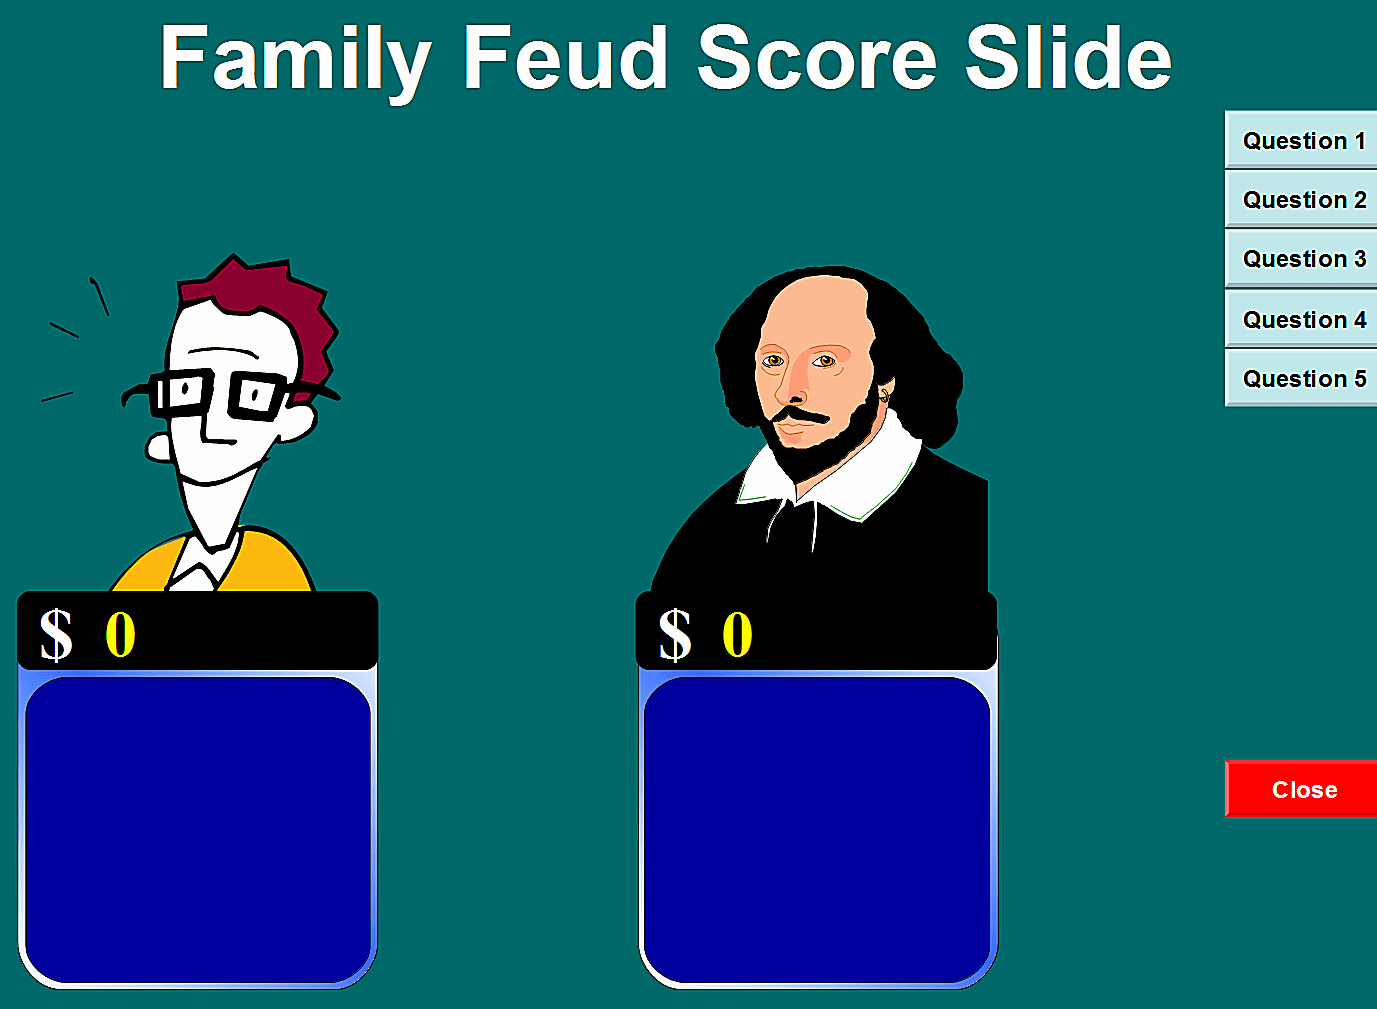 Family Feud Powerpoint Template Inspirational 6 Free Family Feud Powerpoint Templates for Teachers